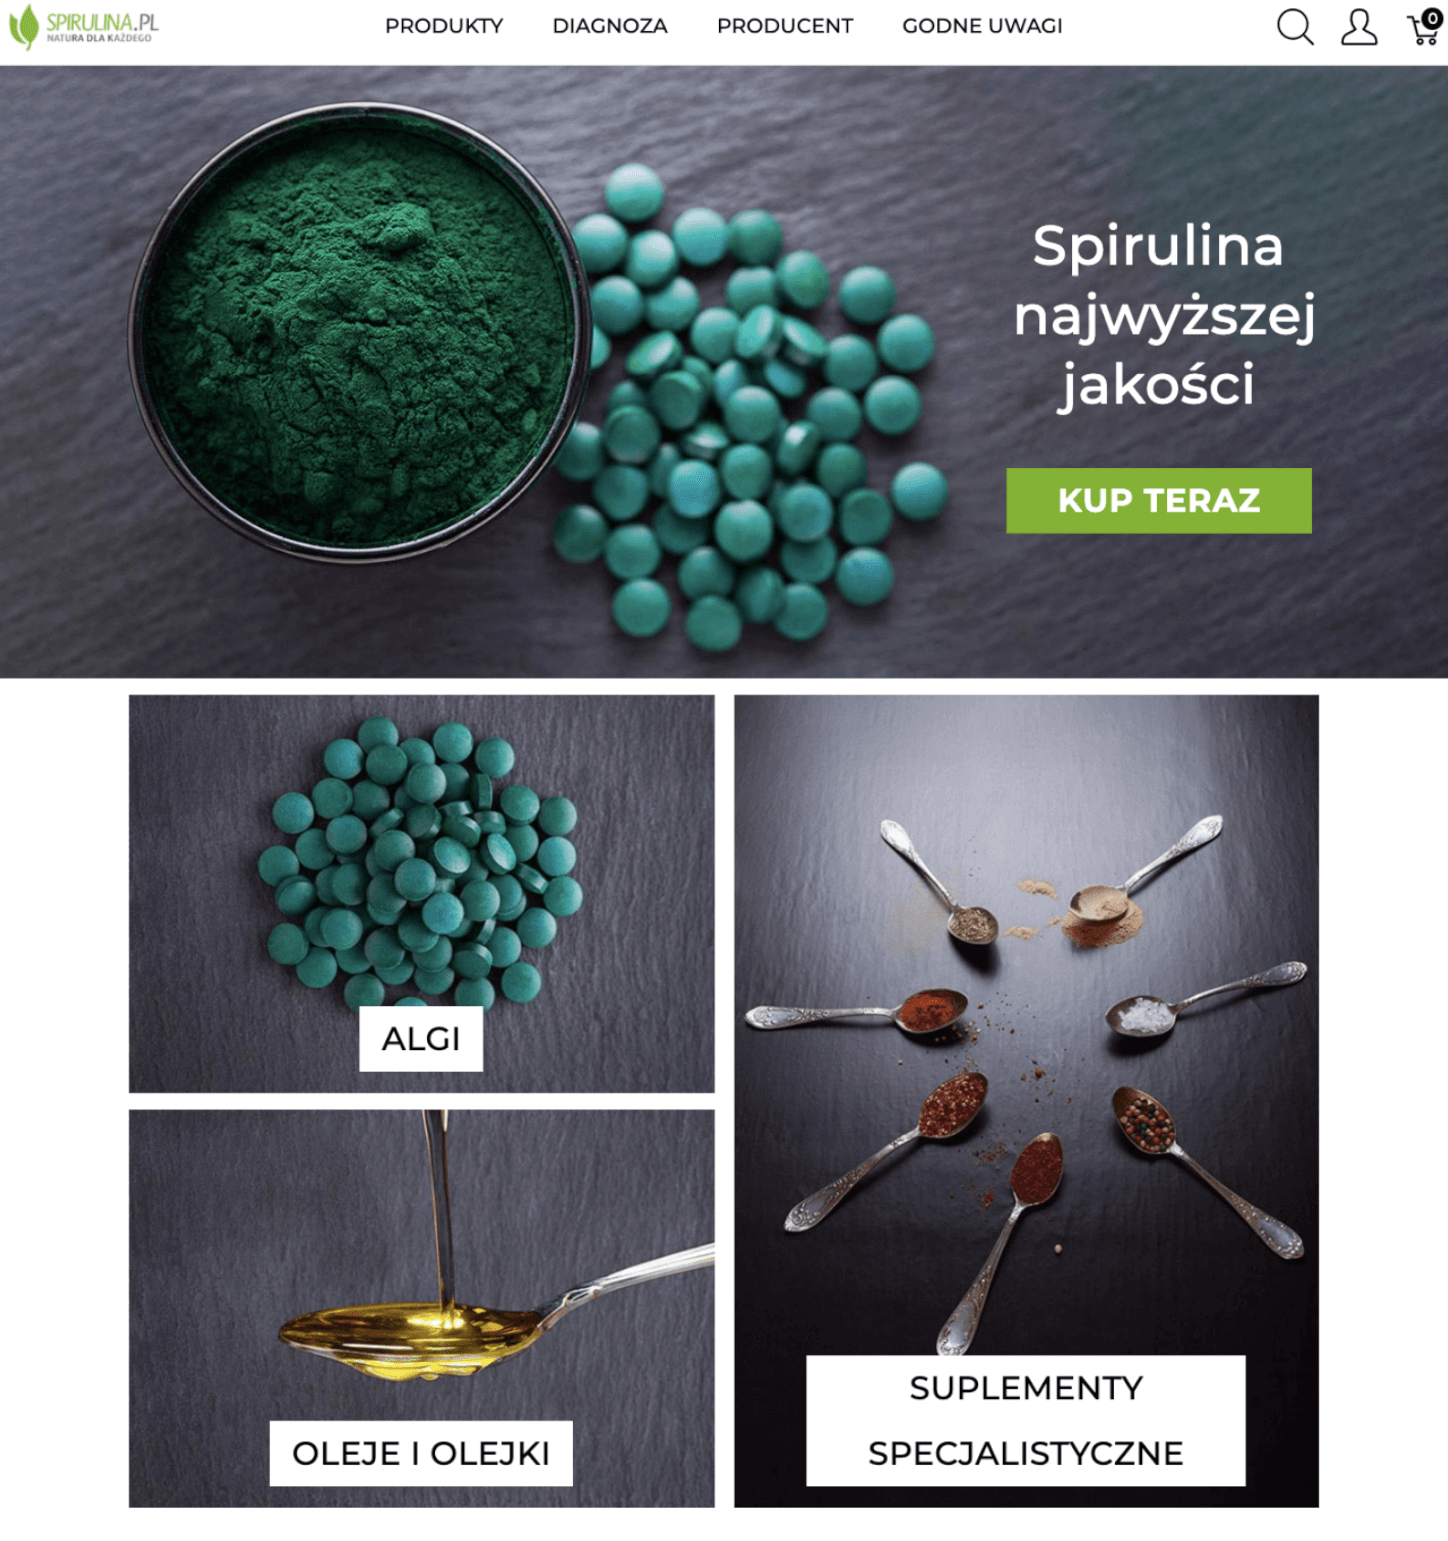 Spirulina and Spree Commerce success story